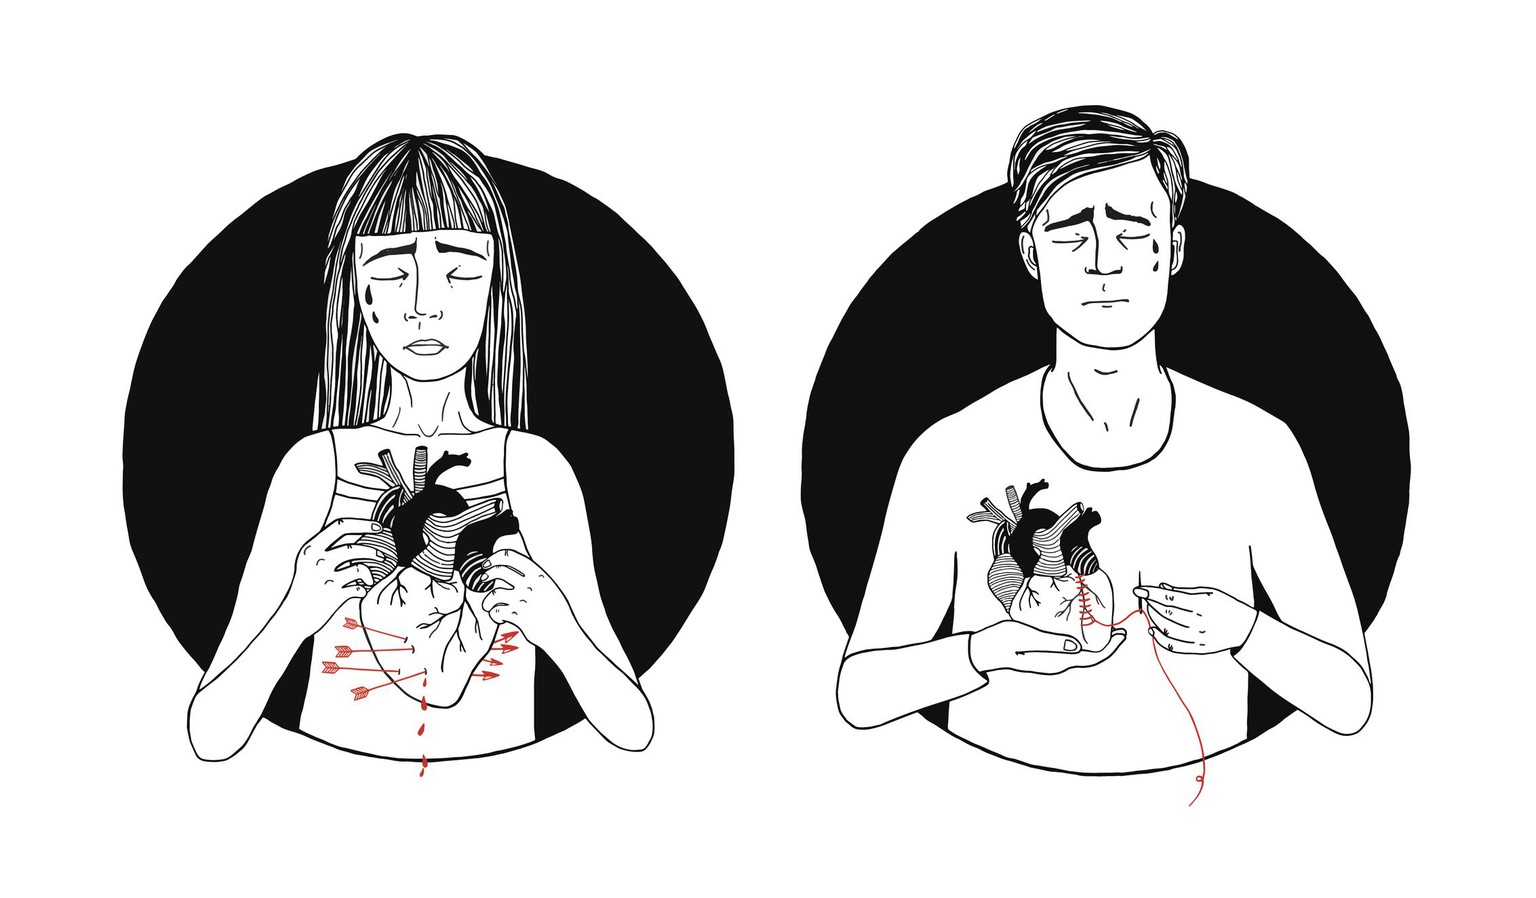 broken heart concept. hand drawn illustration